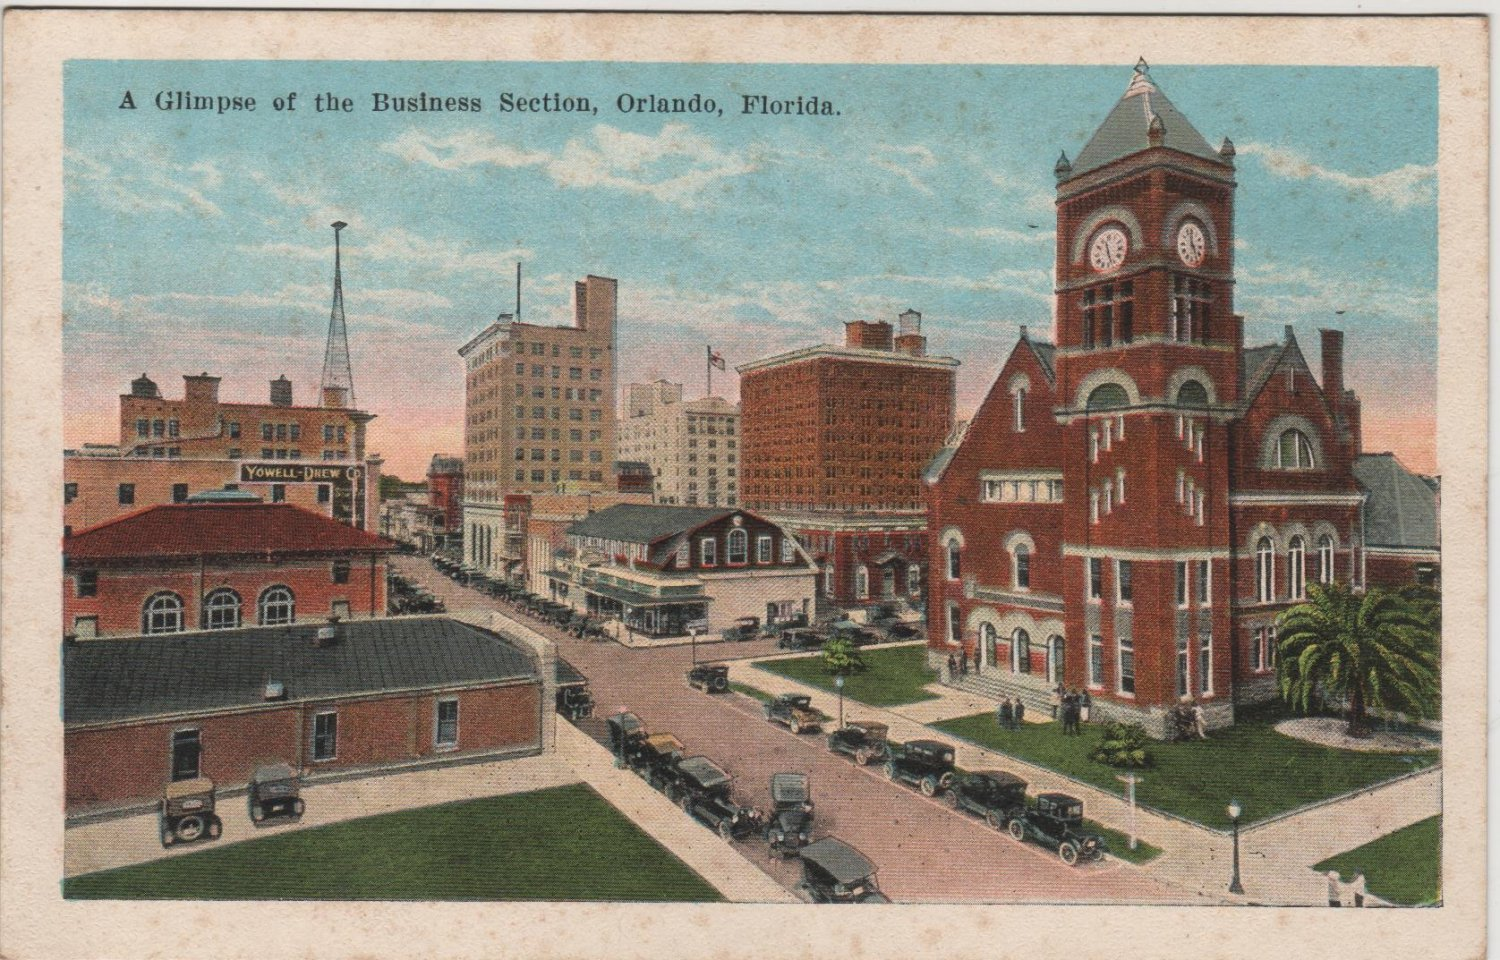 Orlando Florida Postcard, A Glimpse of The Business Section c.1939